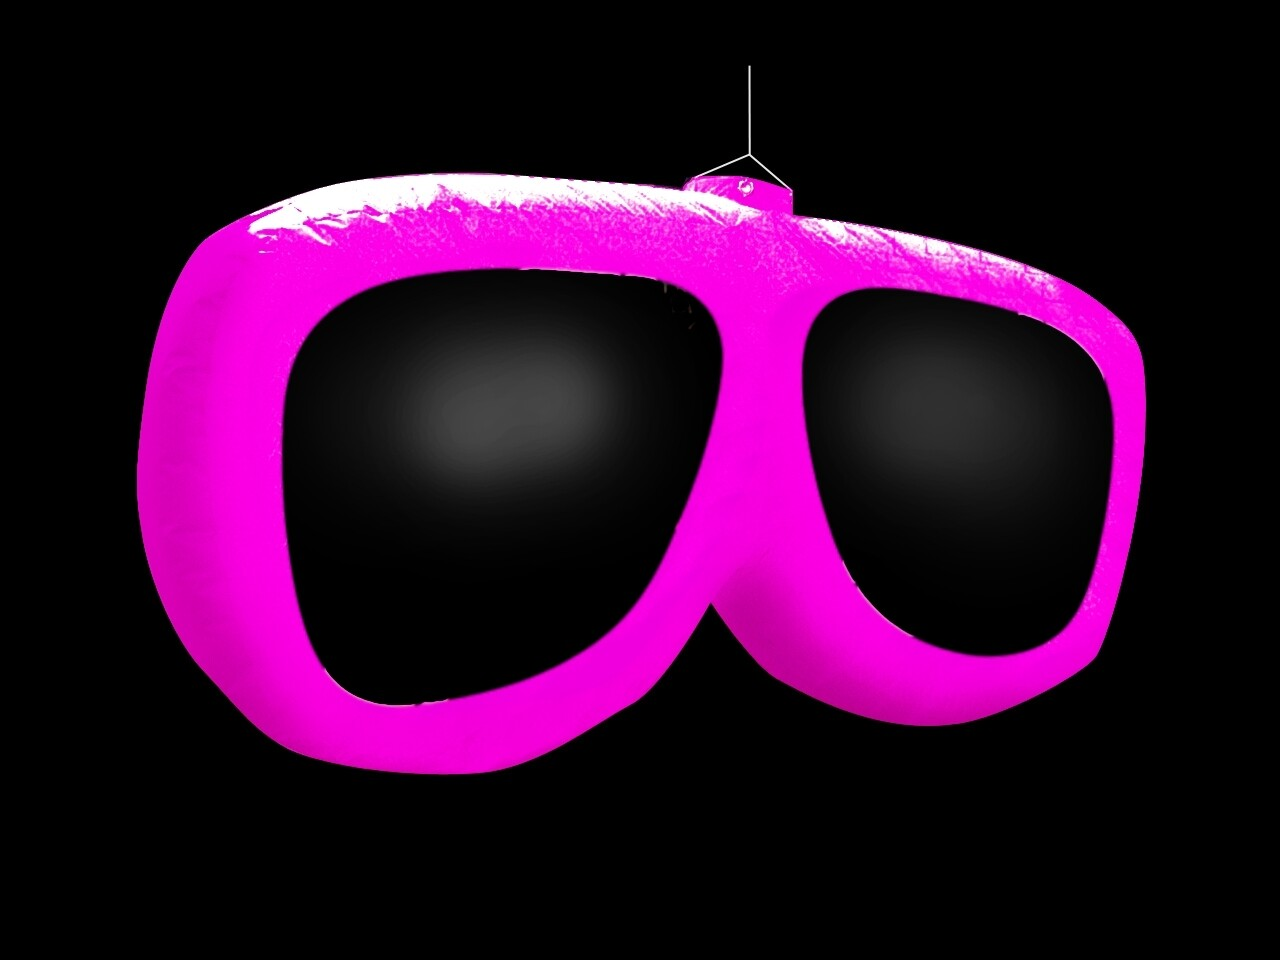 Hanging Inflatable Sunglasses 5.2ft/160cm x 2.5ft/75cm